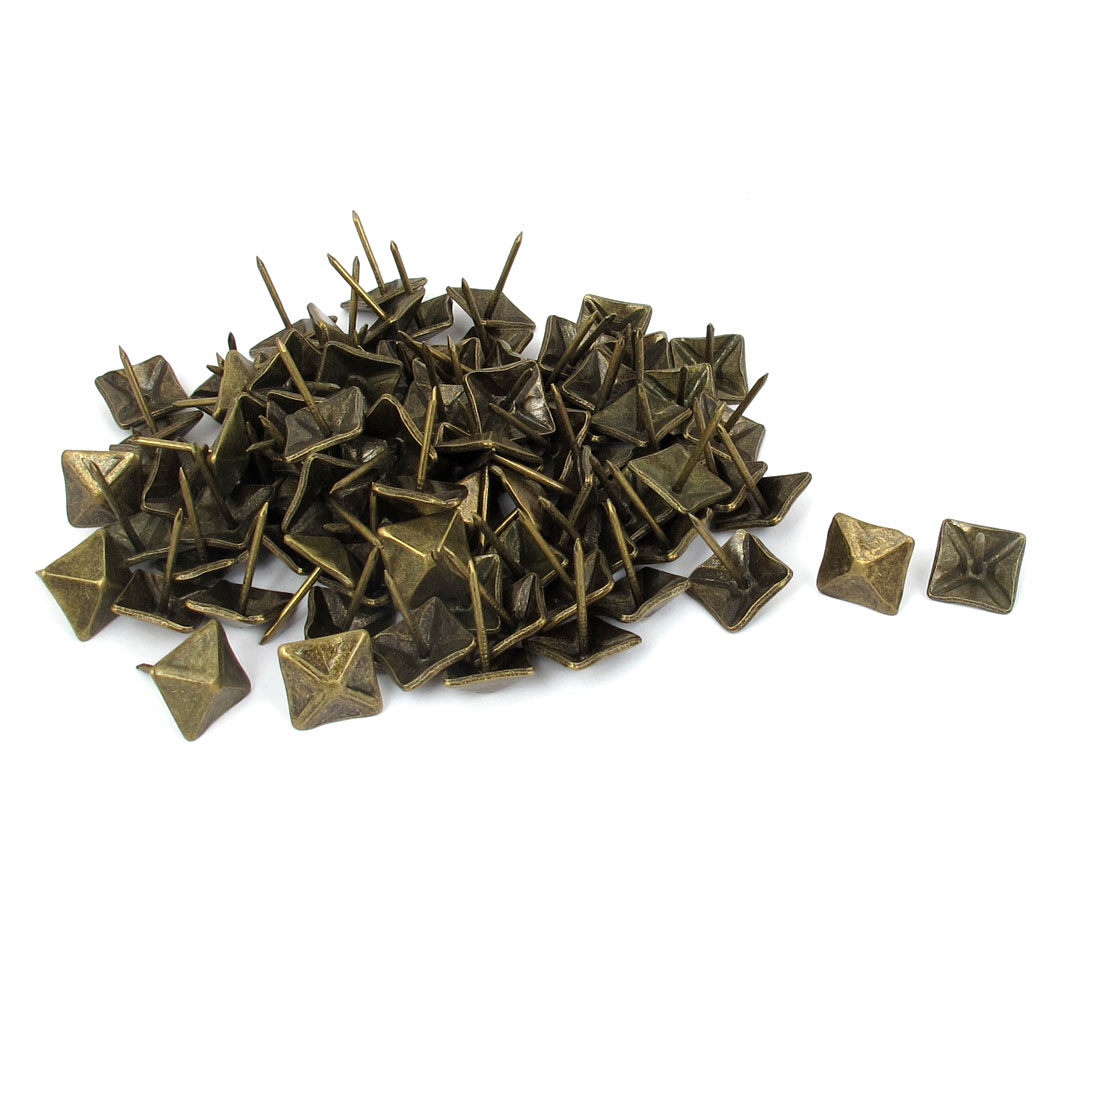 150 Pcs 14mm x 14mm Bronze Tone Antique Style Square Shaped Message Board Map Pins Thumb Tacks